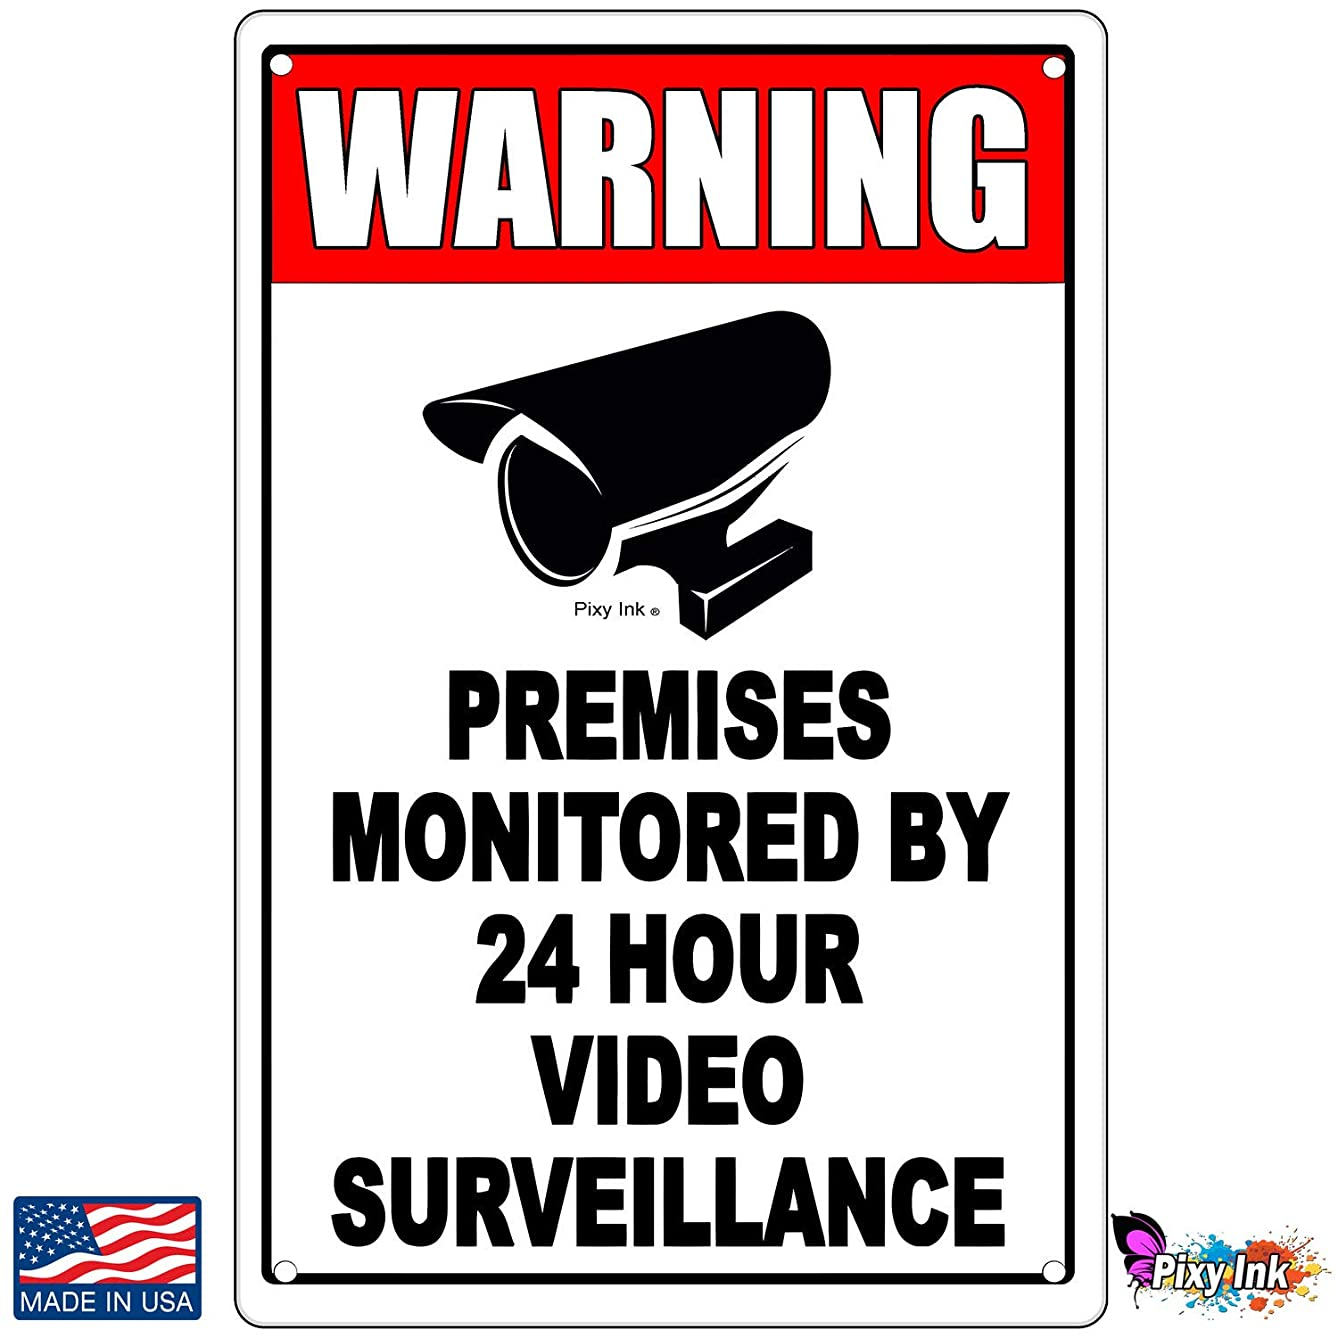 Property Protected by Video Surveillance Warning Security Camera Metal Sign 4x6 Inches